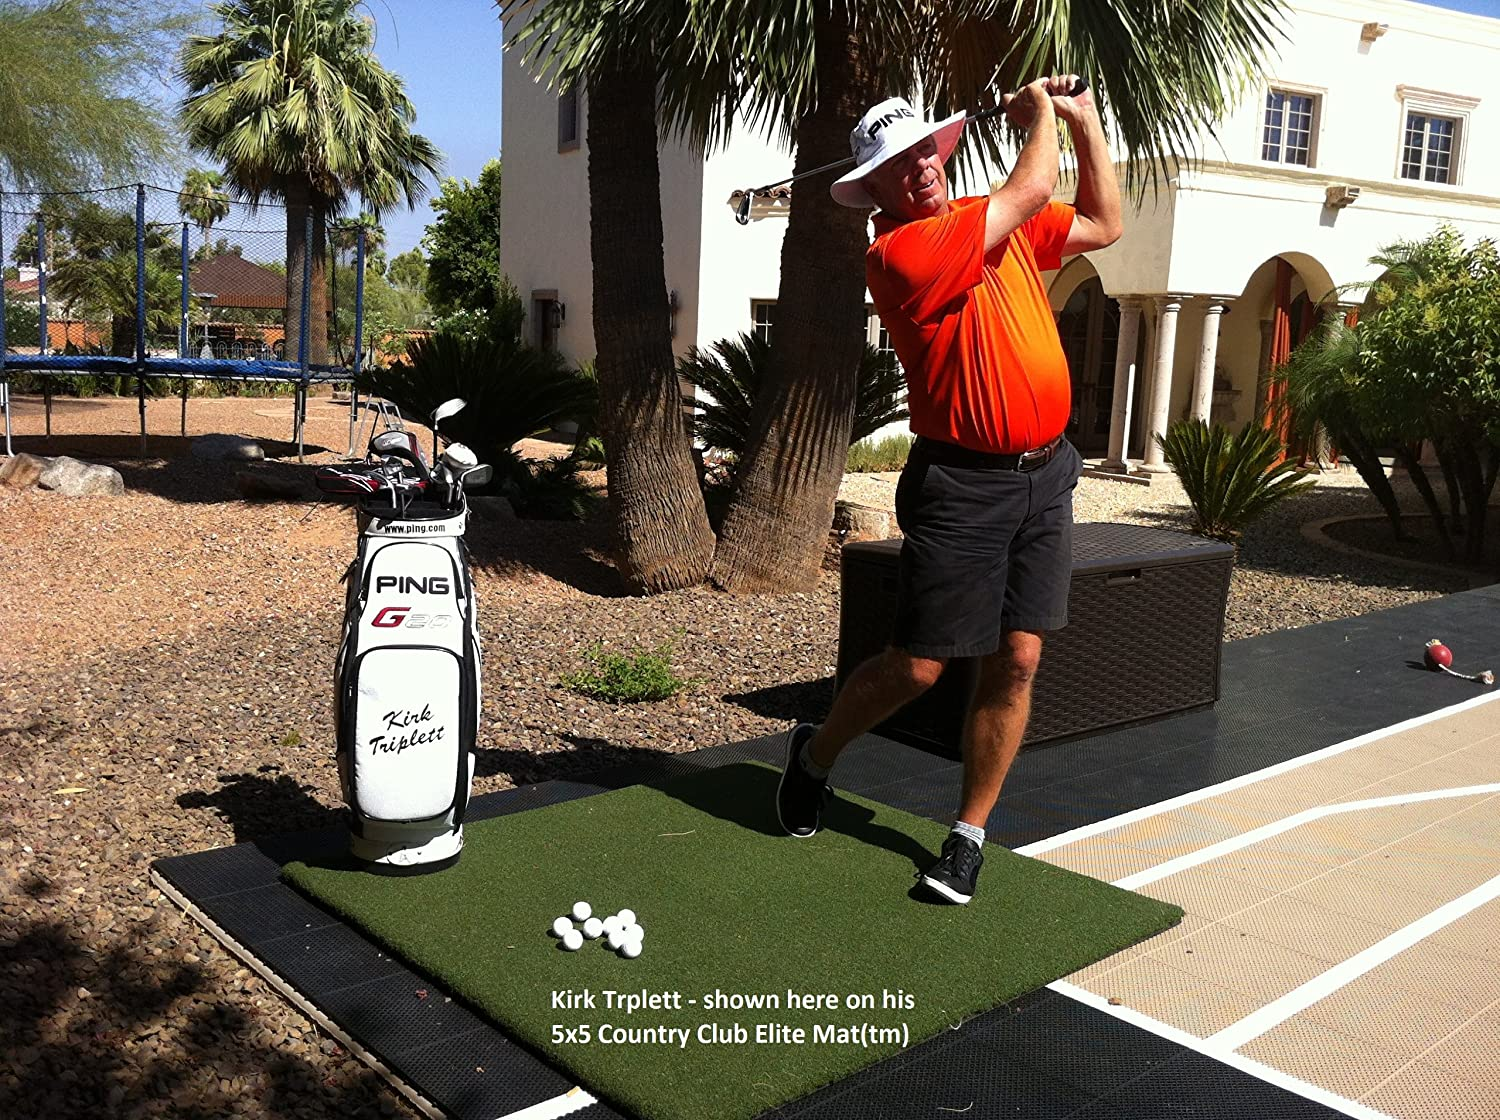 mats to targets pin from and bundle up get youcametowin durapro nets work great mat golf